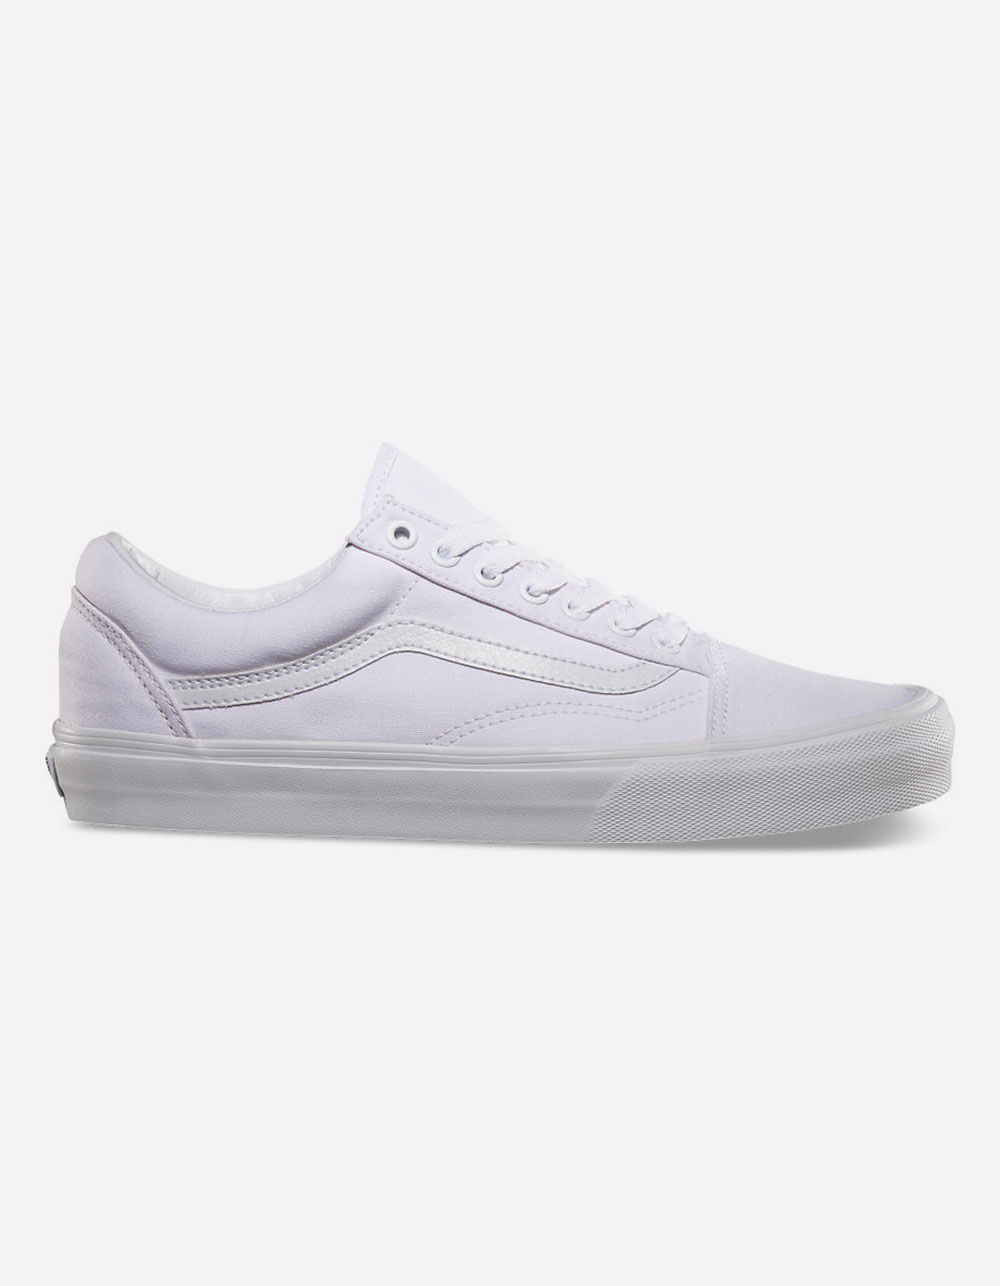 VANS CANVAS OLD SKOOL TRUE WHITE SHOES